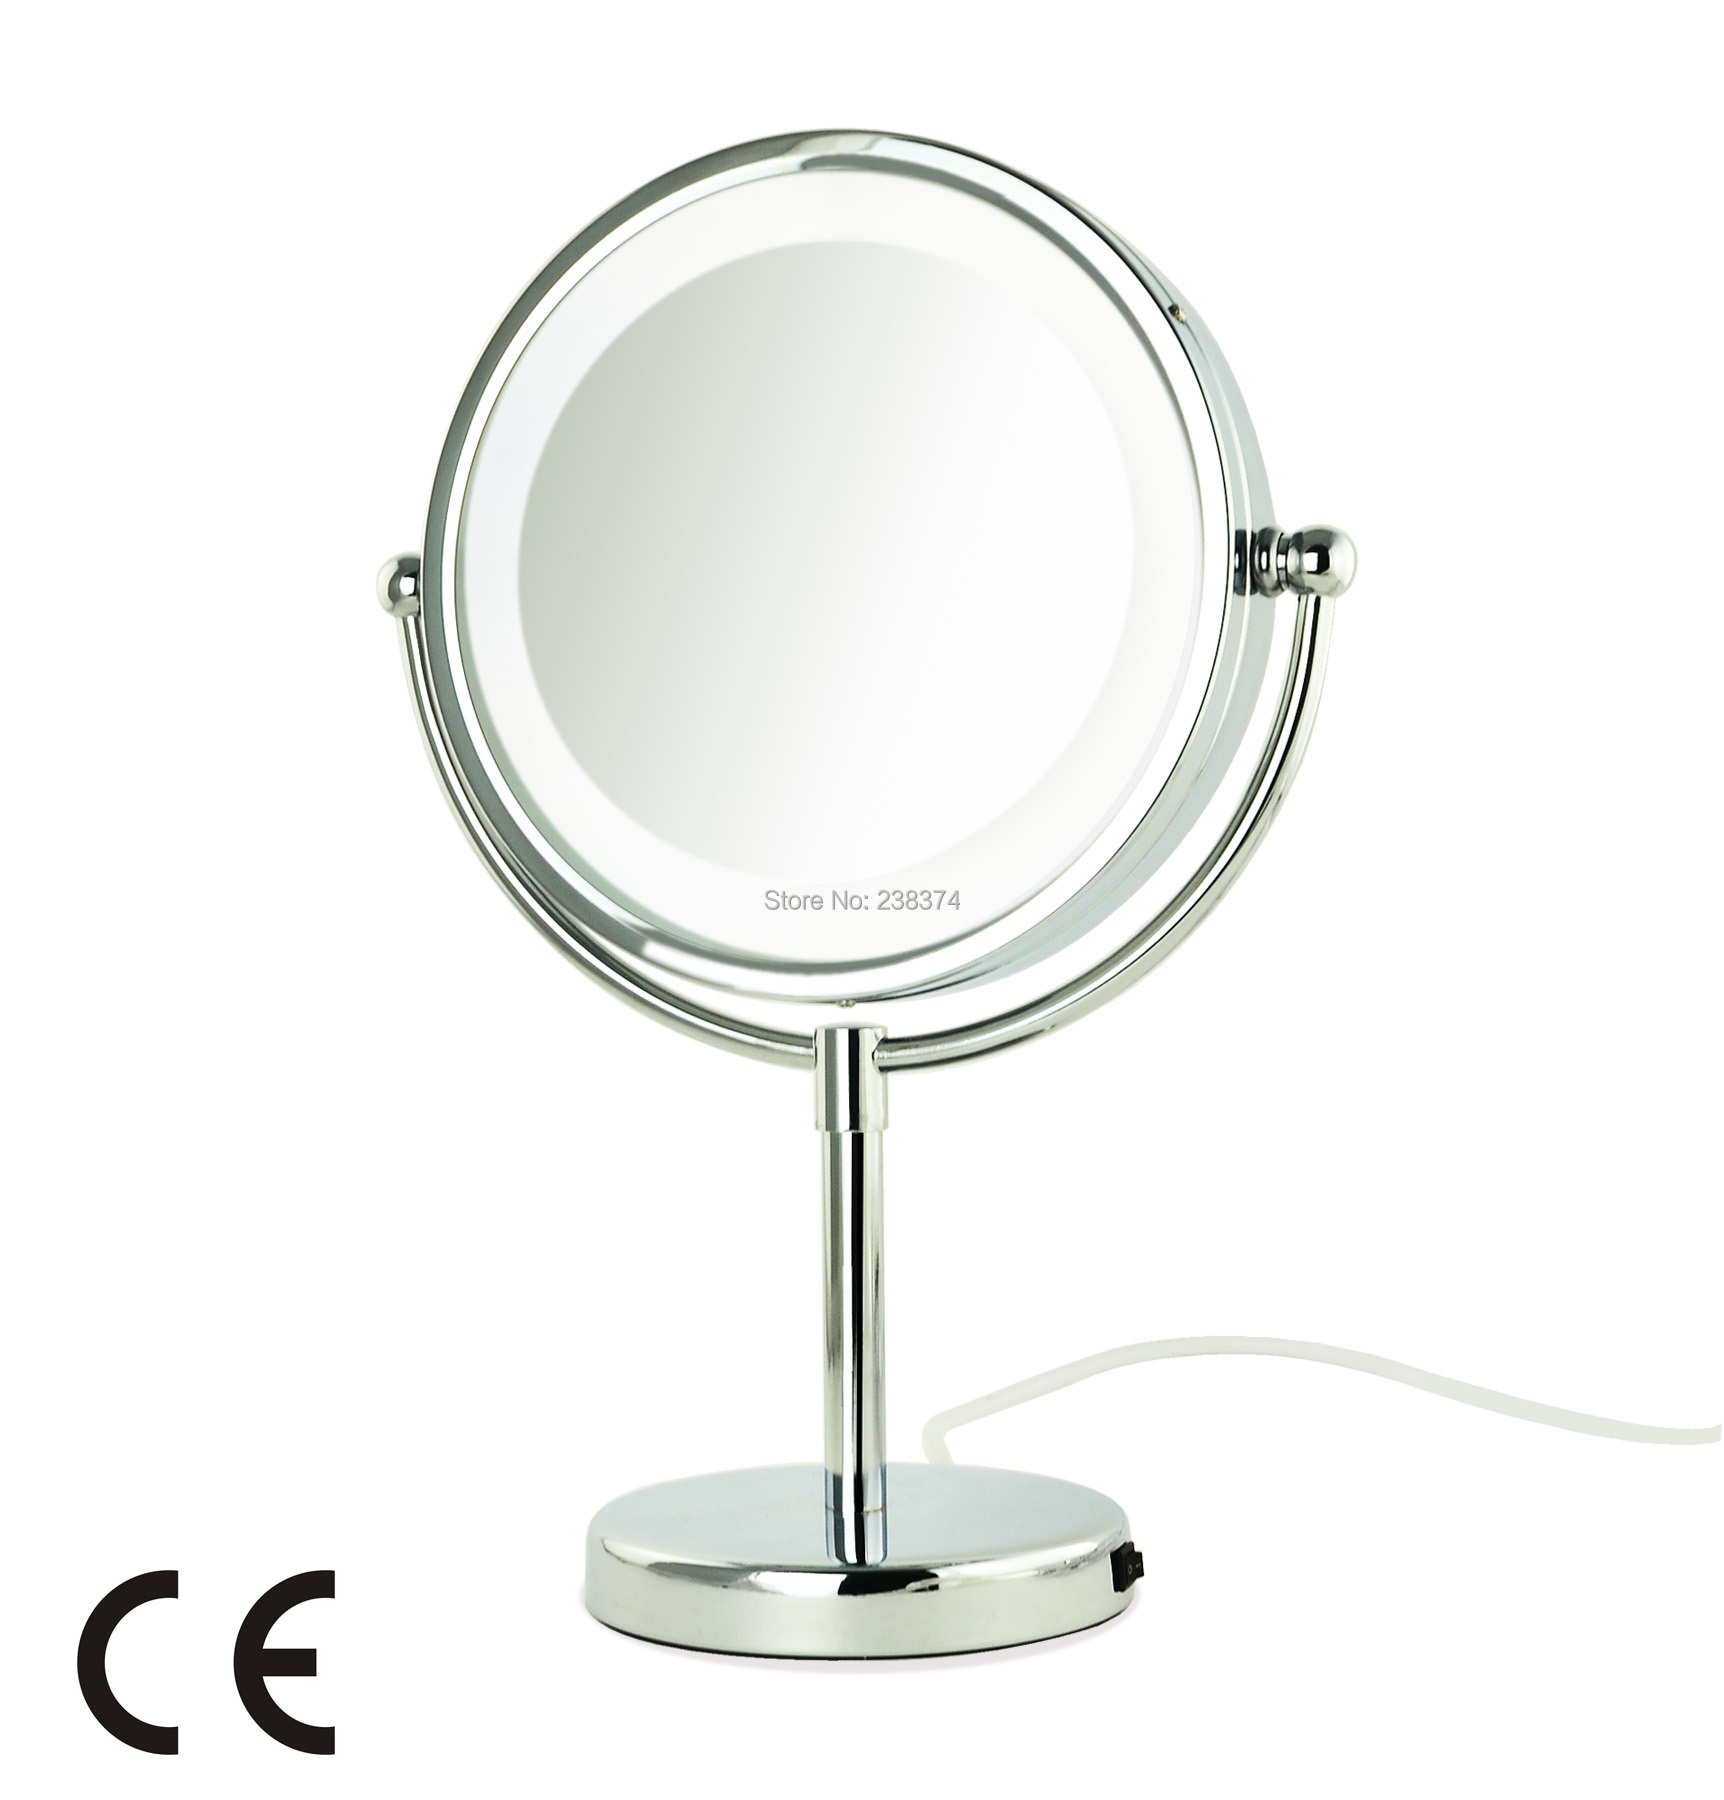 AFSEL Superior Quality 8.5 LED Table Mirror lighted Cosmetic Makeup Mirror Double Sided 5x Magnification Lady Mirror Beauty